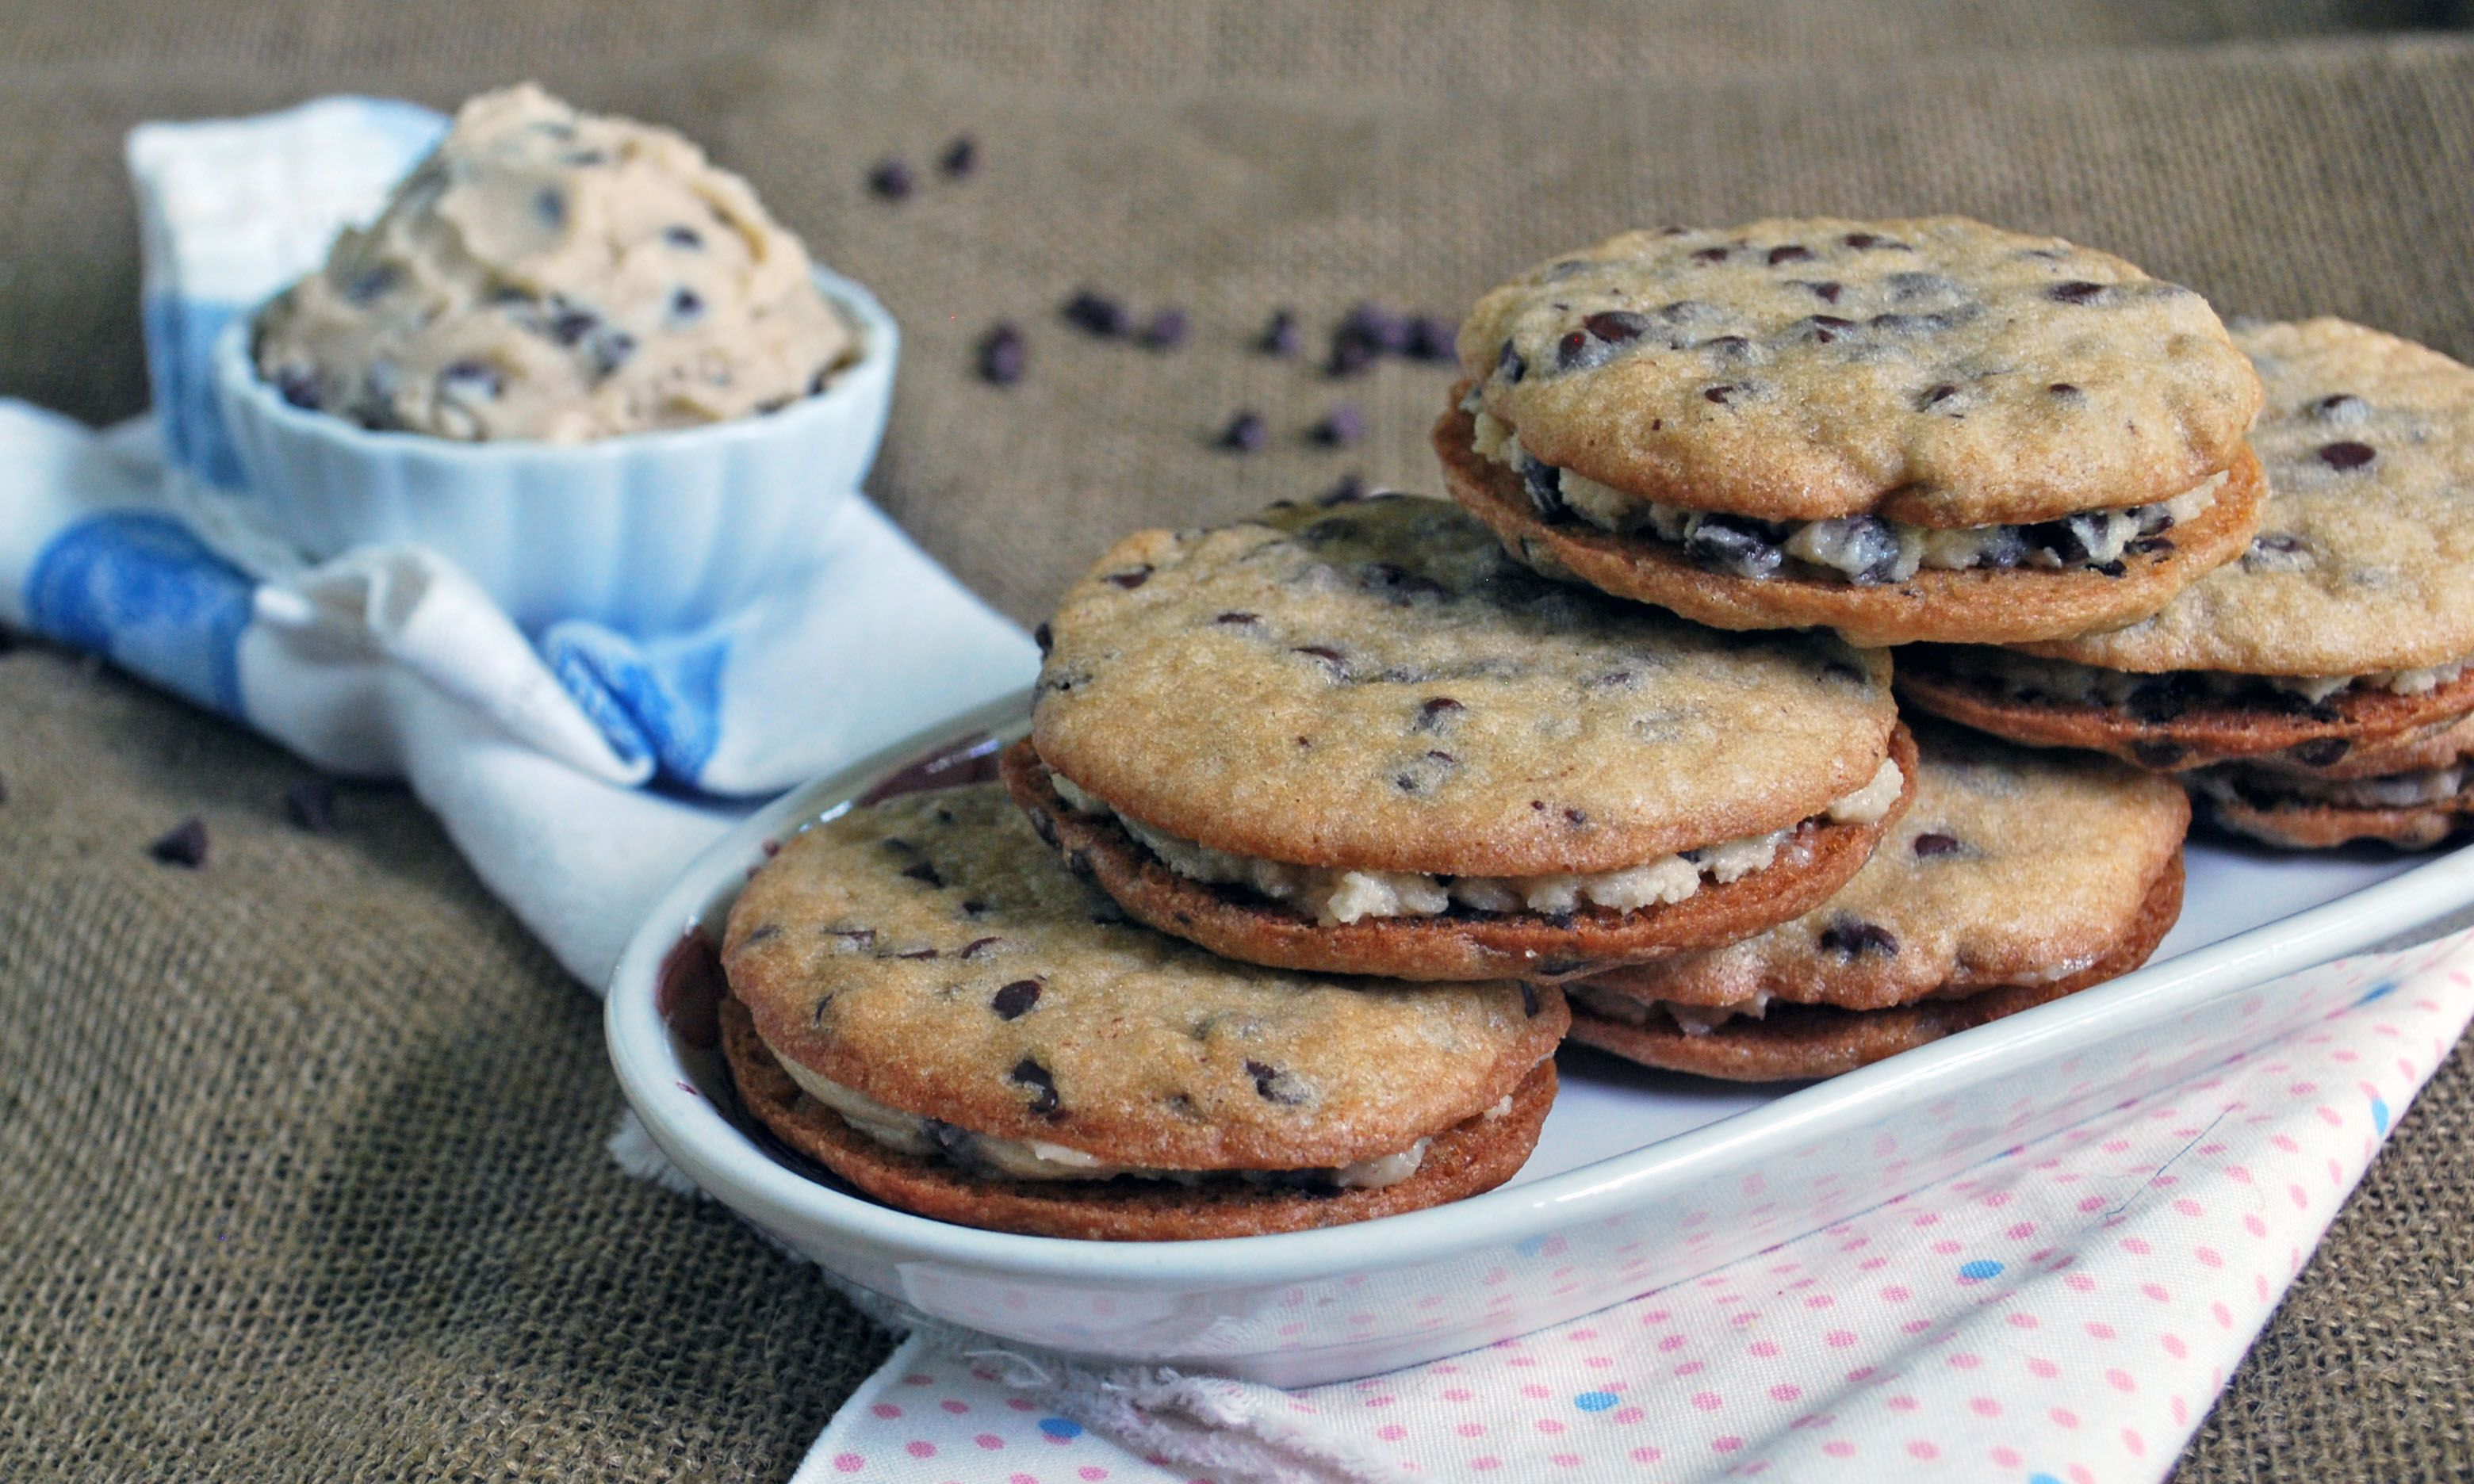 Chocolate Chip Cookie Dough Sandwiches by The Live-In Kitchen